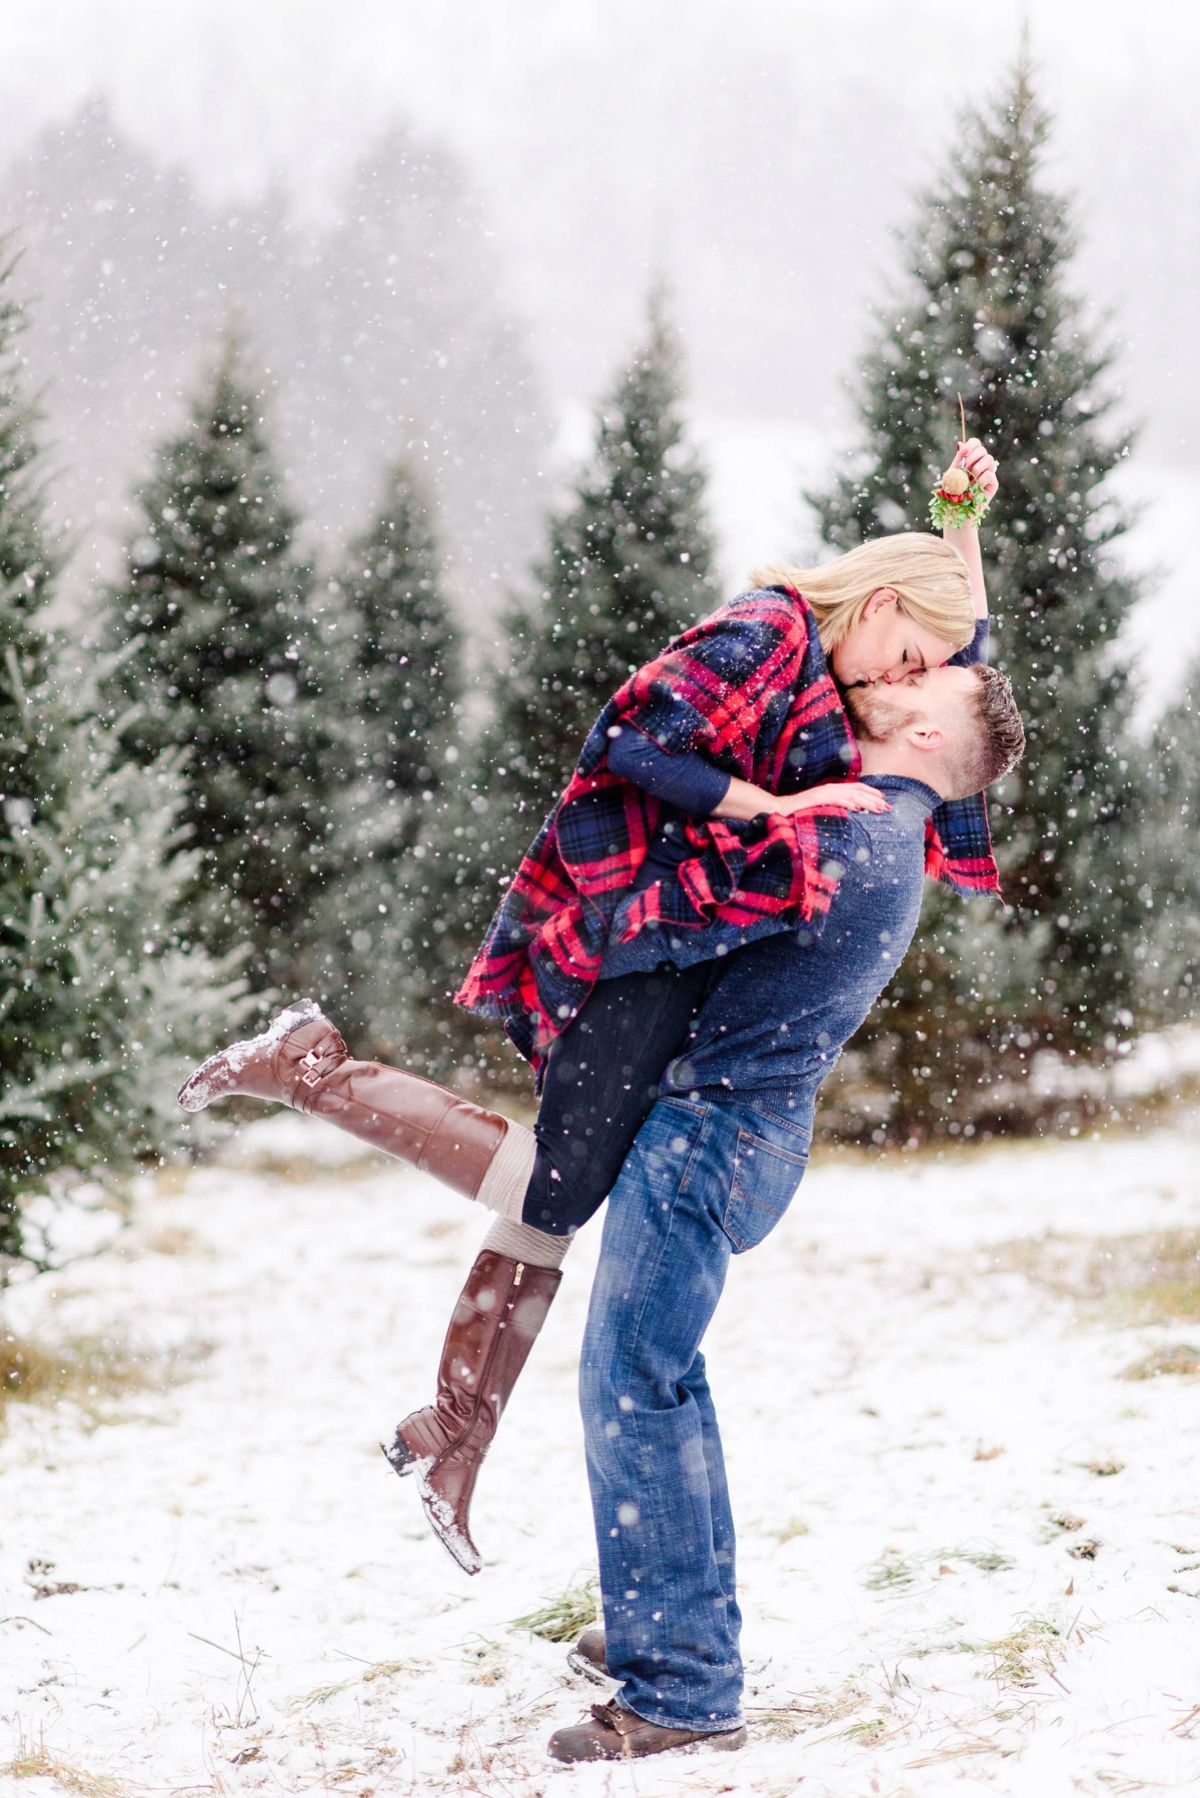 Snowy Christmas Tree Farm Engagement Session Christmas Tree Farm Photo Shoot Snowy Christmas Tree Tree Farm Photo Shoot